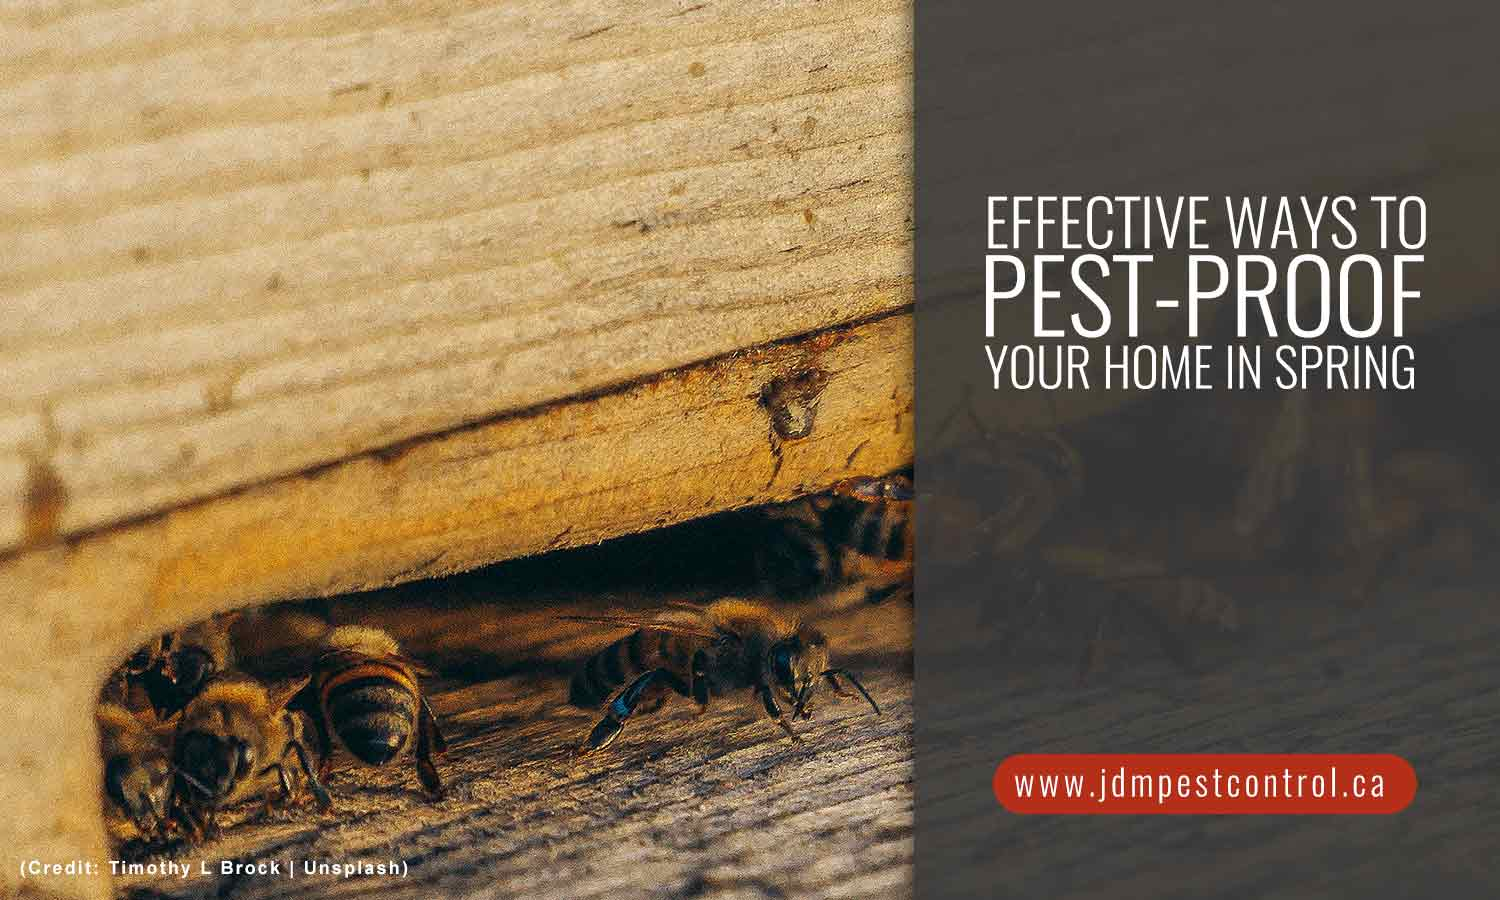 Effective Ways to Pest-Proof Your Home in Spring